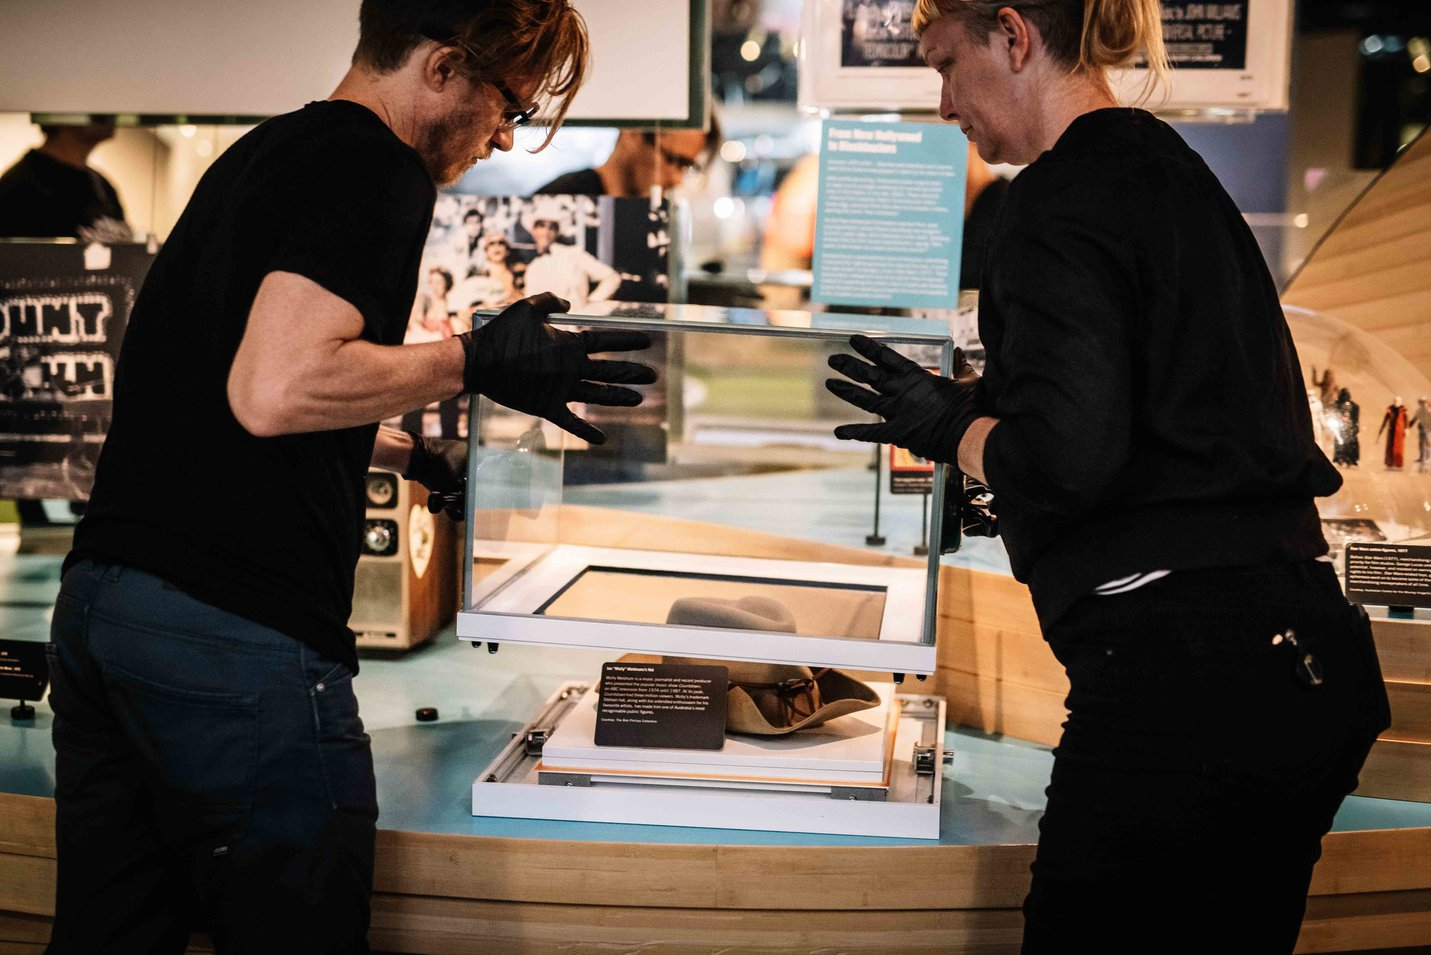 ACMI exhibition technicians remove perspex covers to remove Molly Meldrum's hat Photographer- Phoebe Powell